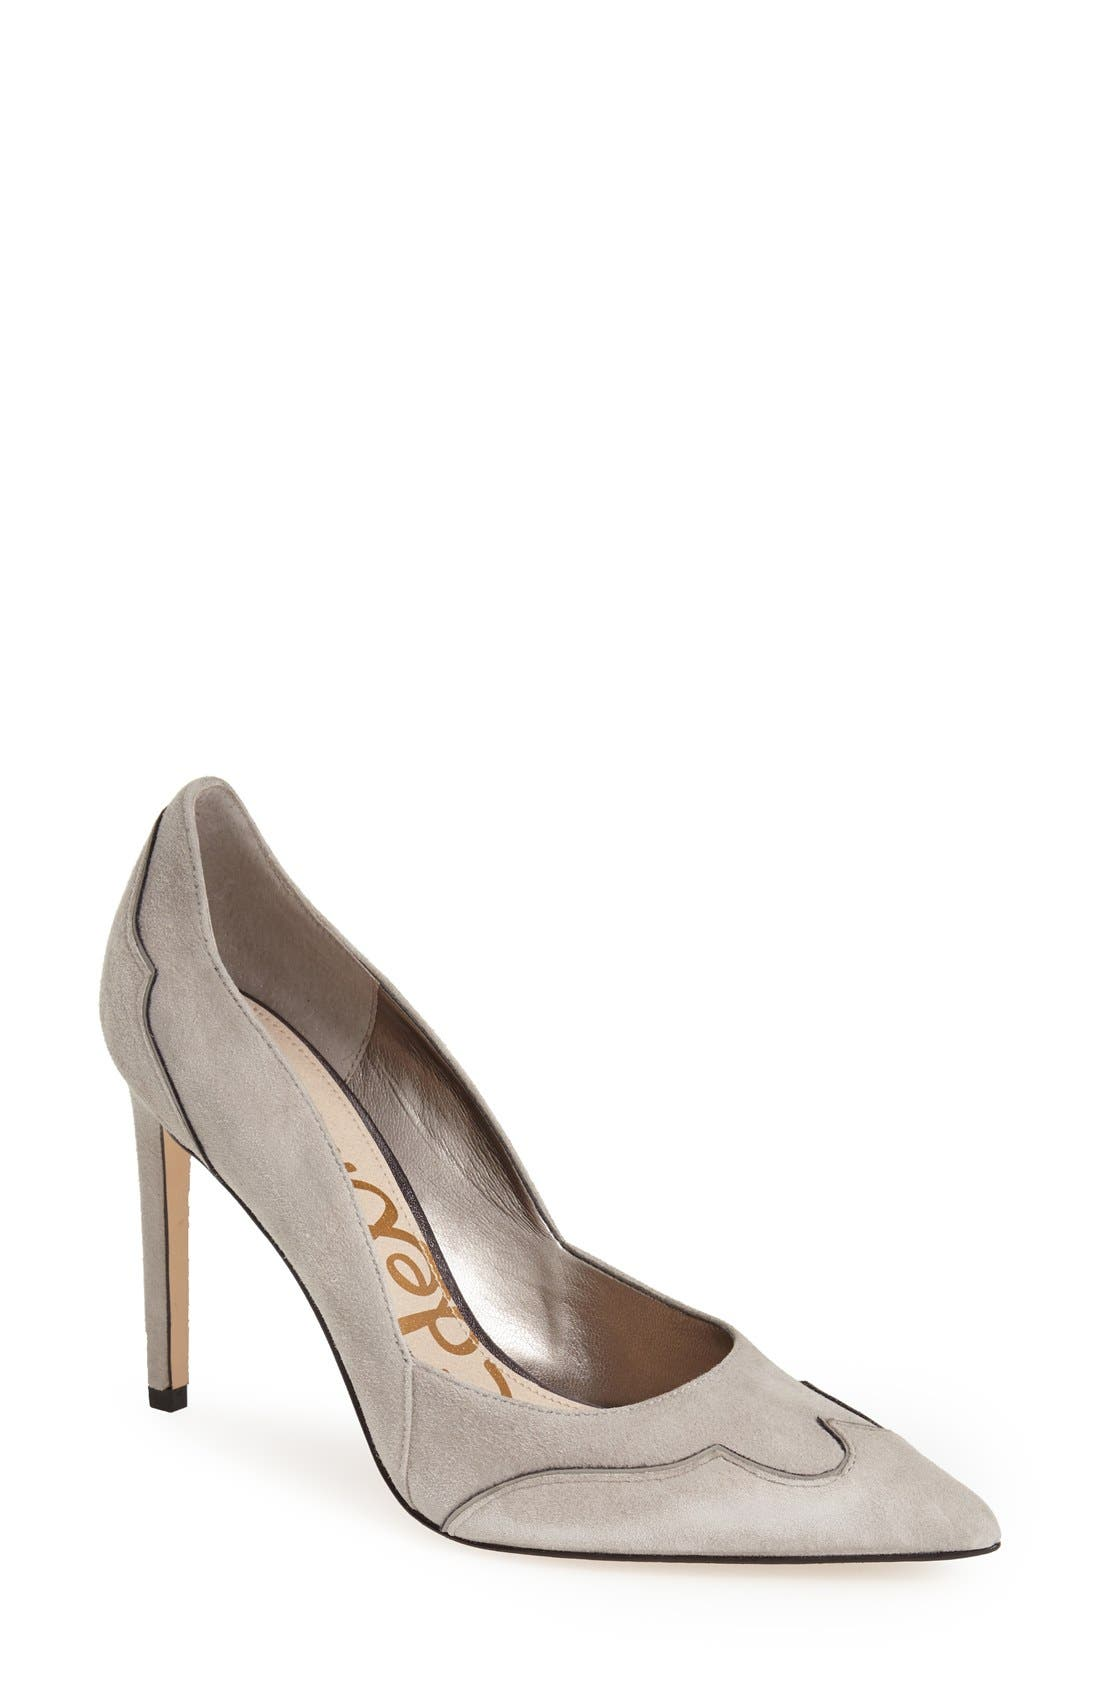 'Dixie' Suede Pointy Toe Pump,                             Main thumbnail 1, color,                             Winter Sky